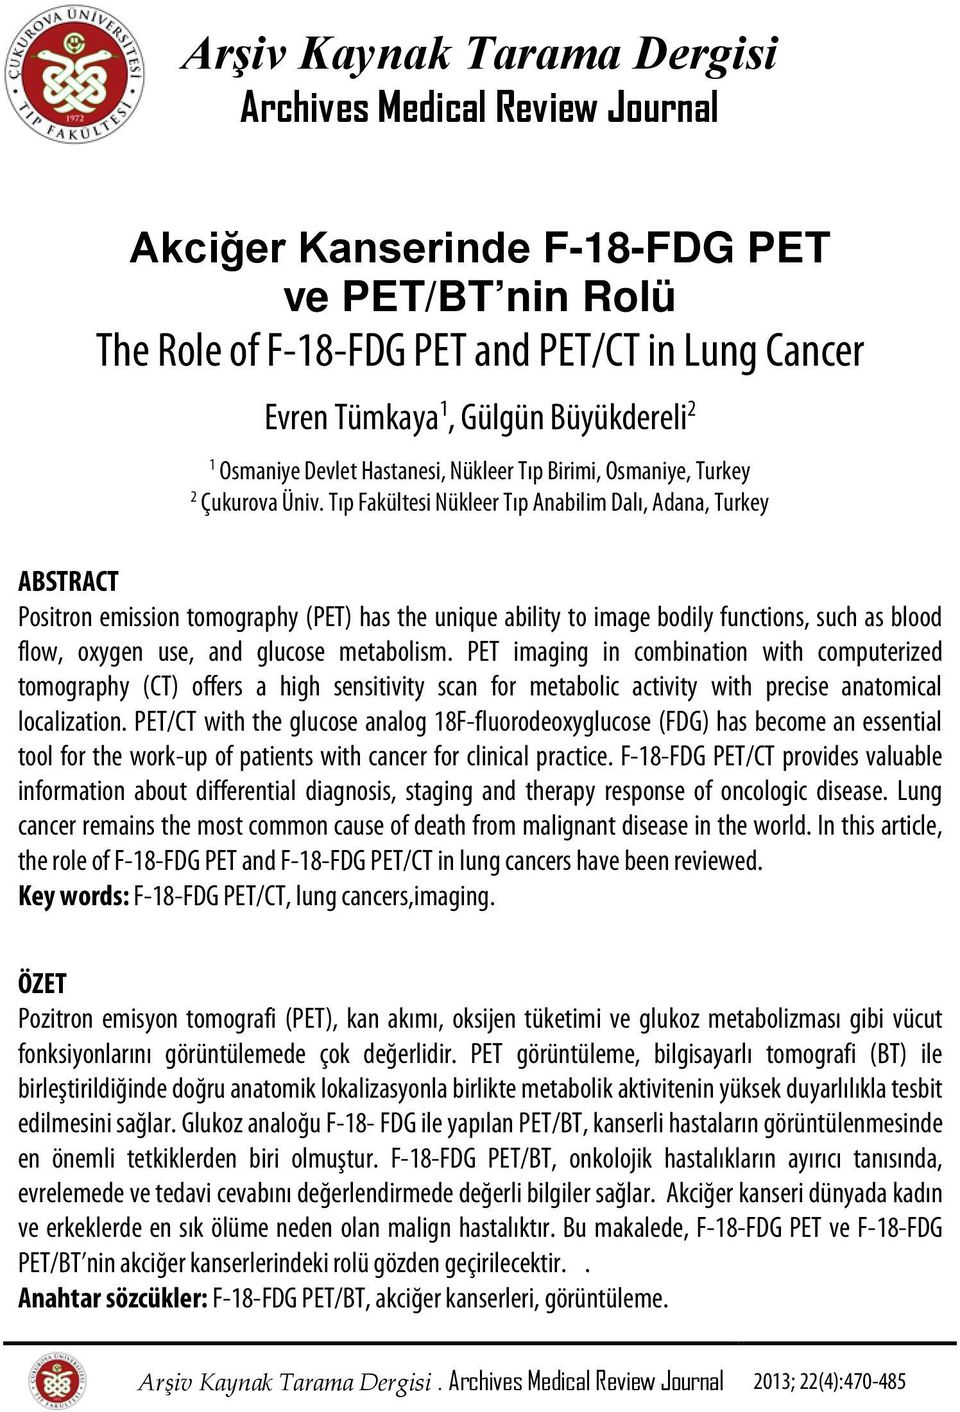 Tıp Fakültesi Nükleer Tıp Anabilim Dalı, Adana, Turkey ABSTRACT Positron emission tomography (PET) has the unique ability to image bodily functions, such as blood flow, oxygen use, and glucose